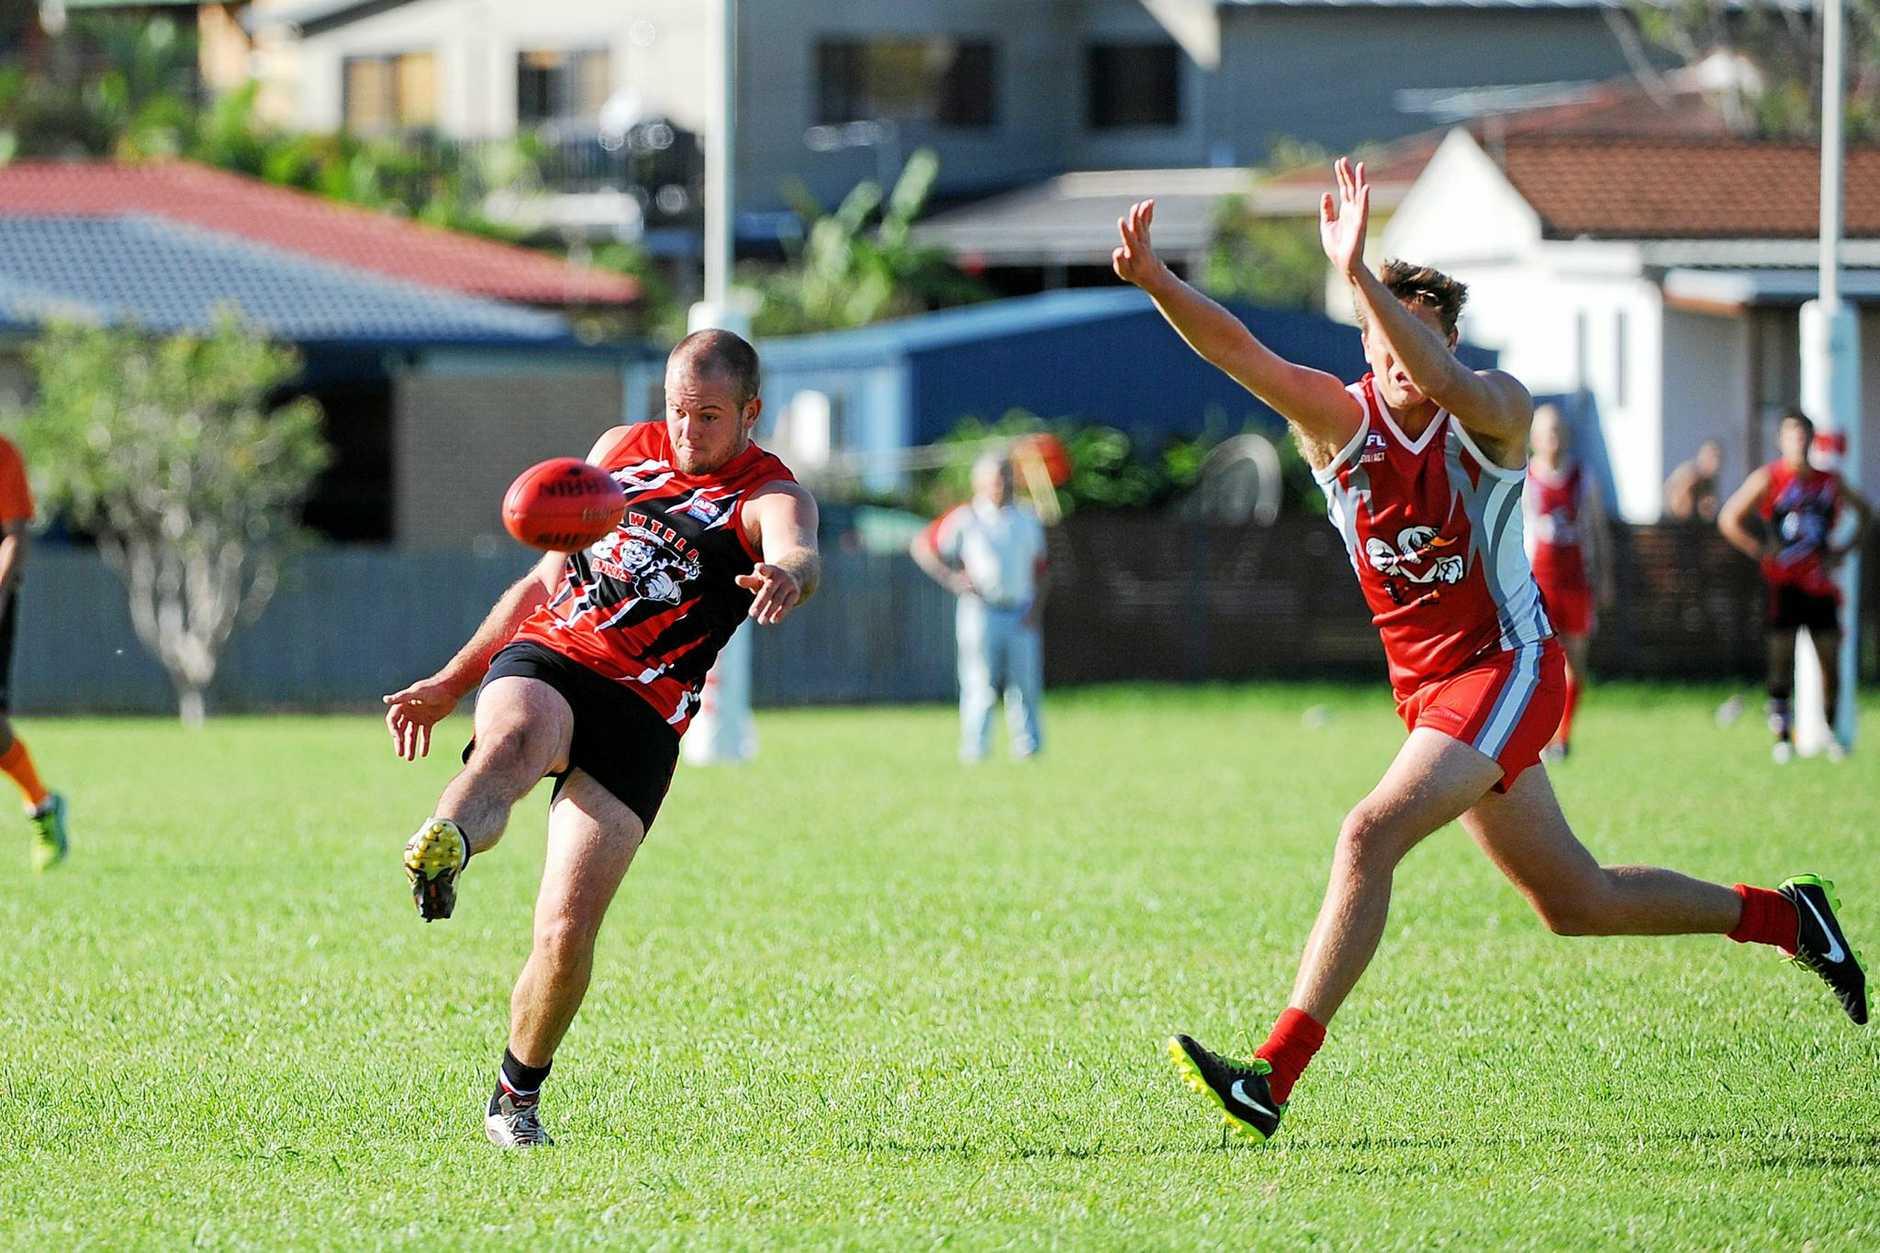 HOT SHOT: Aaron Clarke booted seven goals for Sawtell/Toormina during the Friday night game at Grafton.